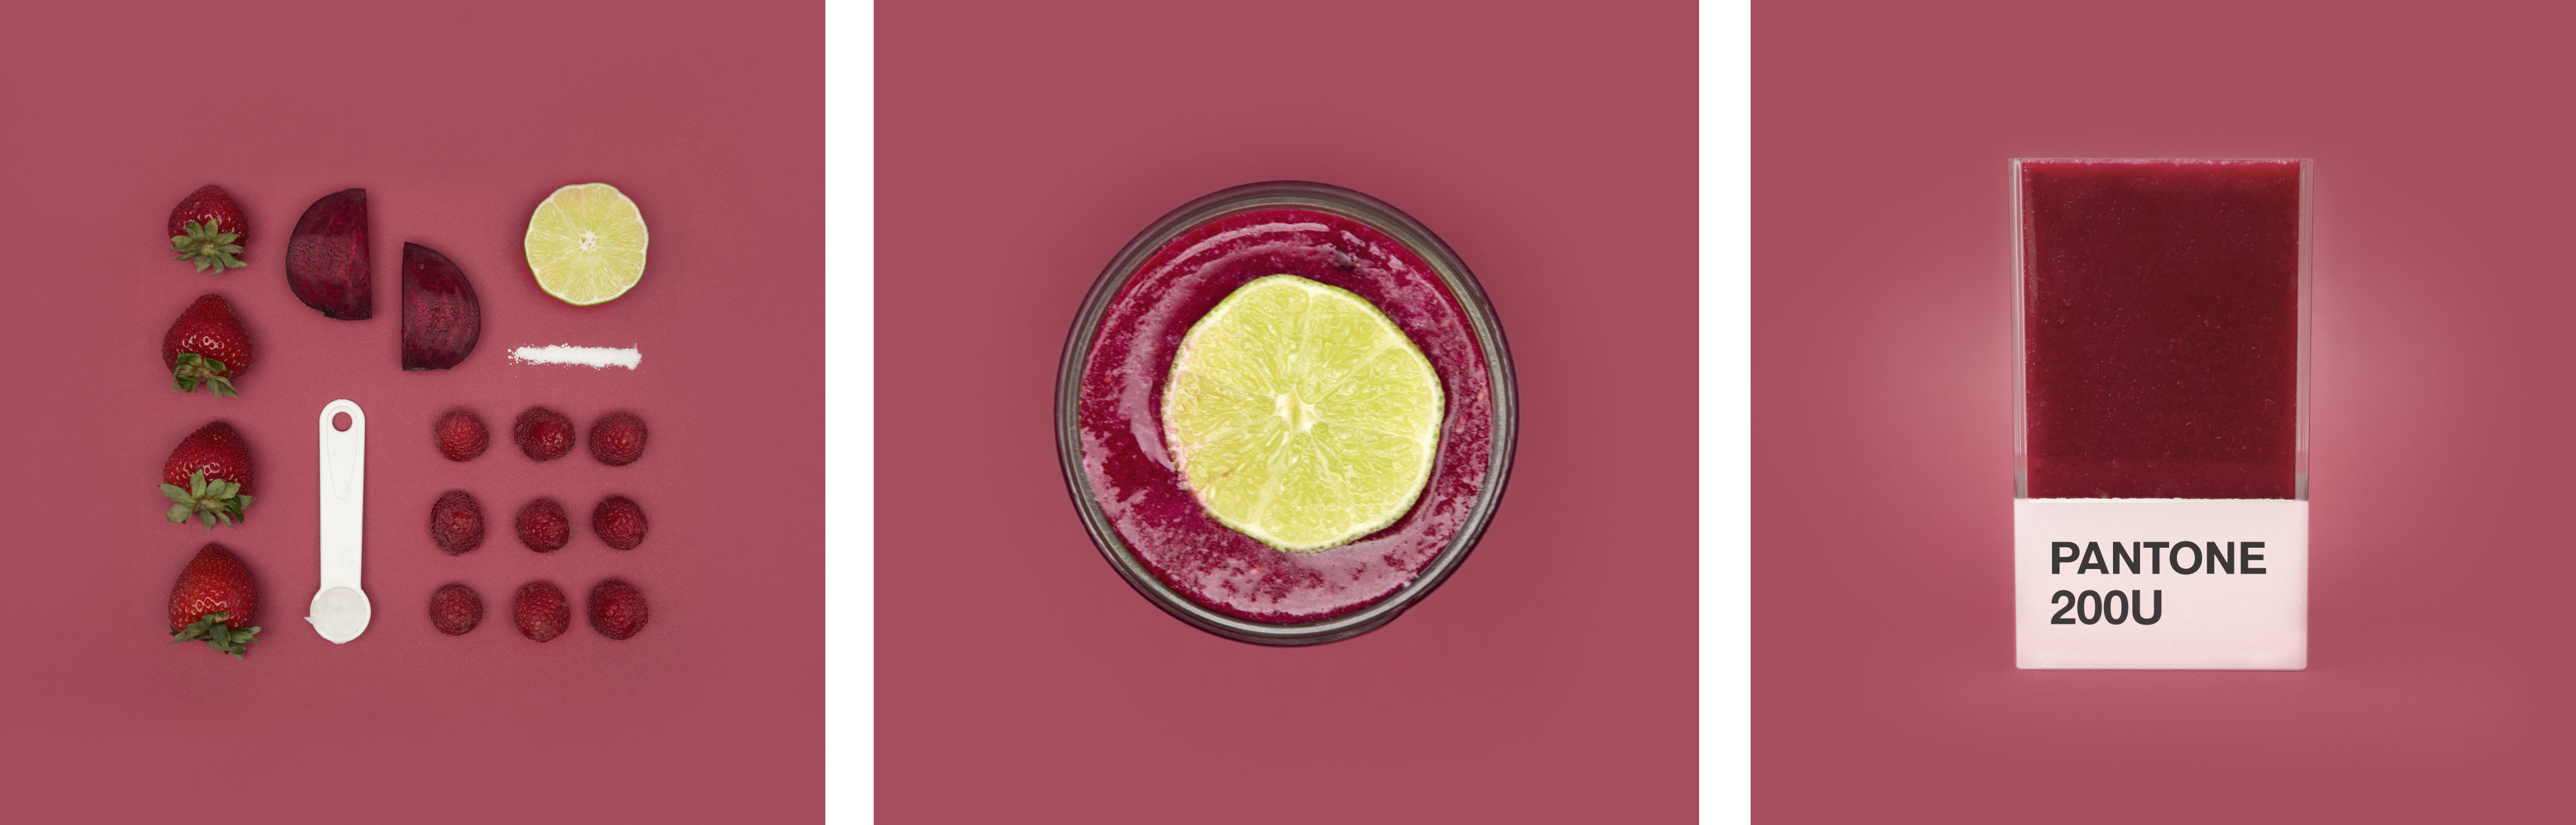 Smoothie Pantone bordeaux